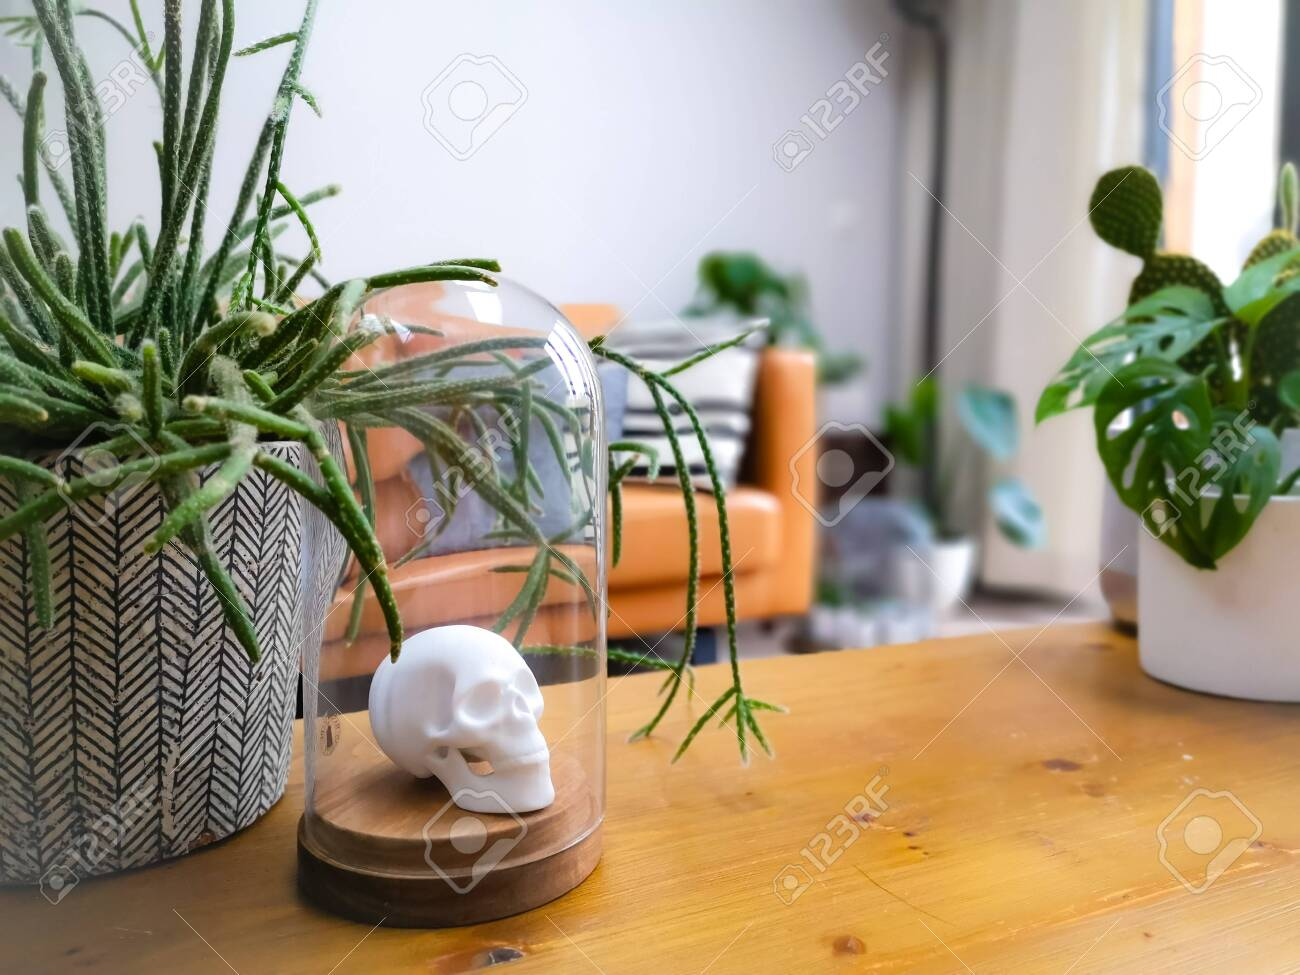 White Porcelain Animal Head In A Glass Bell Jar On A Wooden Coffee Table In A Light Modern Living Room With Numerous Plants Creating An Urban Jungle Lizenzfreie Fotos Bilder Und Stock